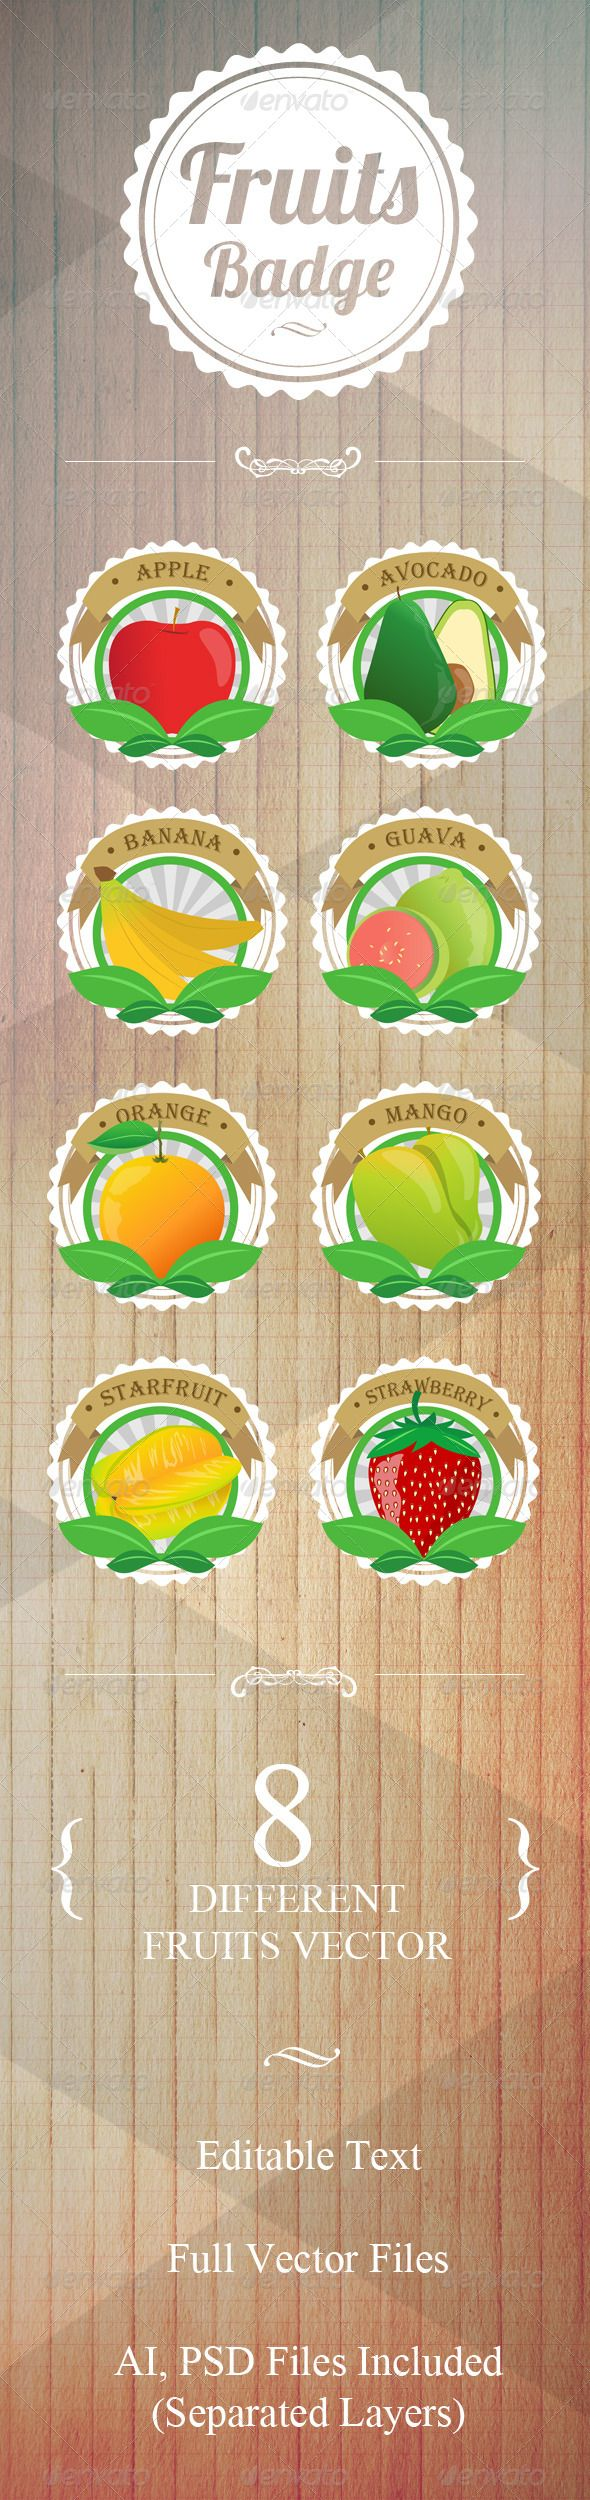 8 Fruit Badges Vector #photoshop #psd #ribbon #retro • Available here → https://graphicriver.net/item/8-fruit-badges-vector/5047652?ref=pxcr